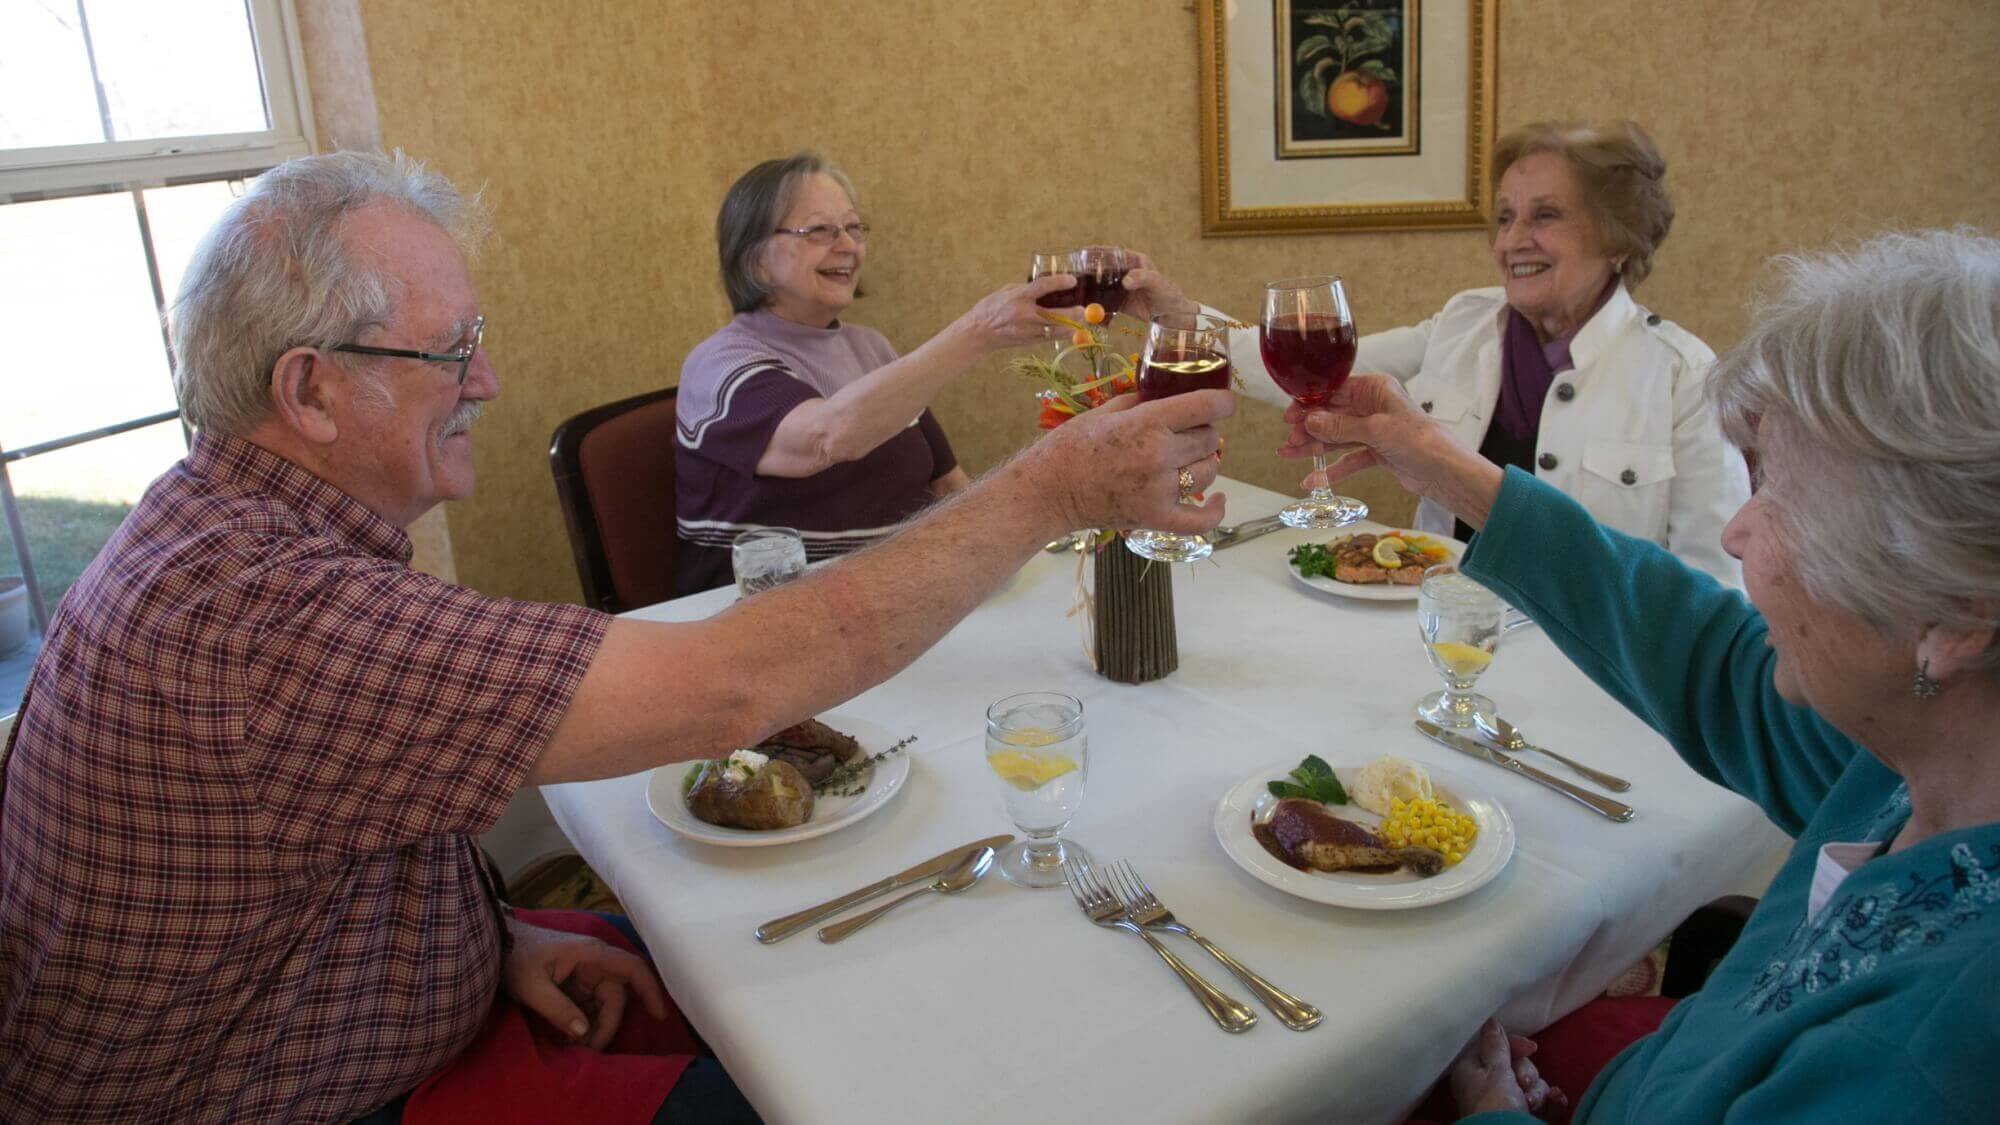 Senior friends dining together, cheering their wine glasses.